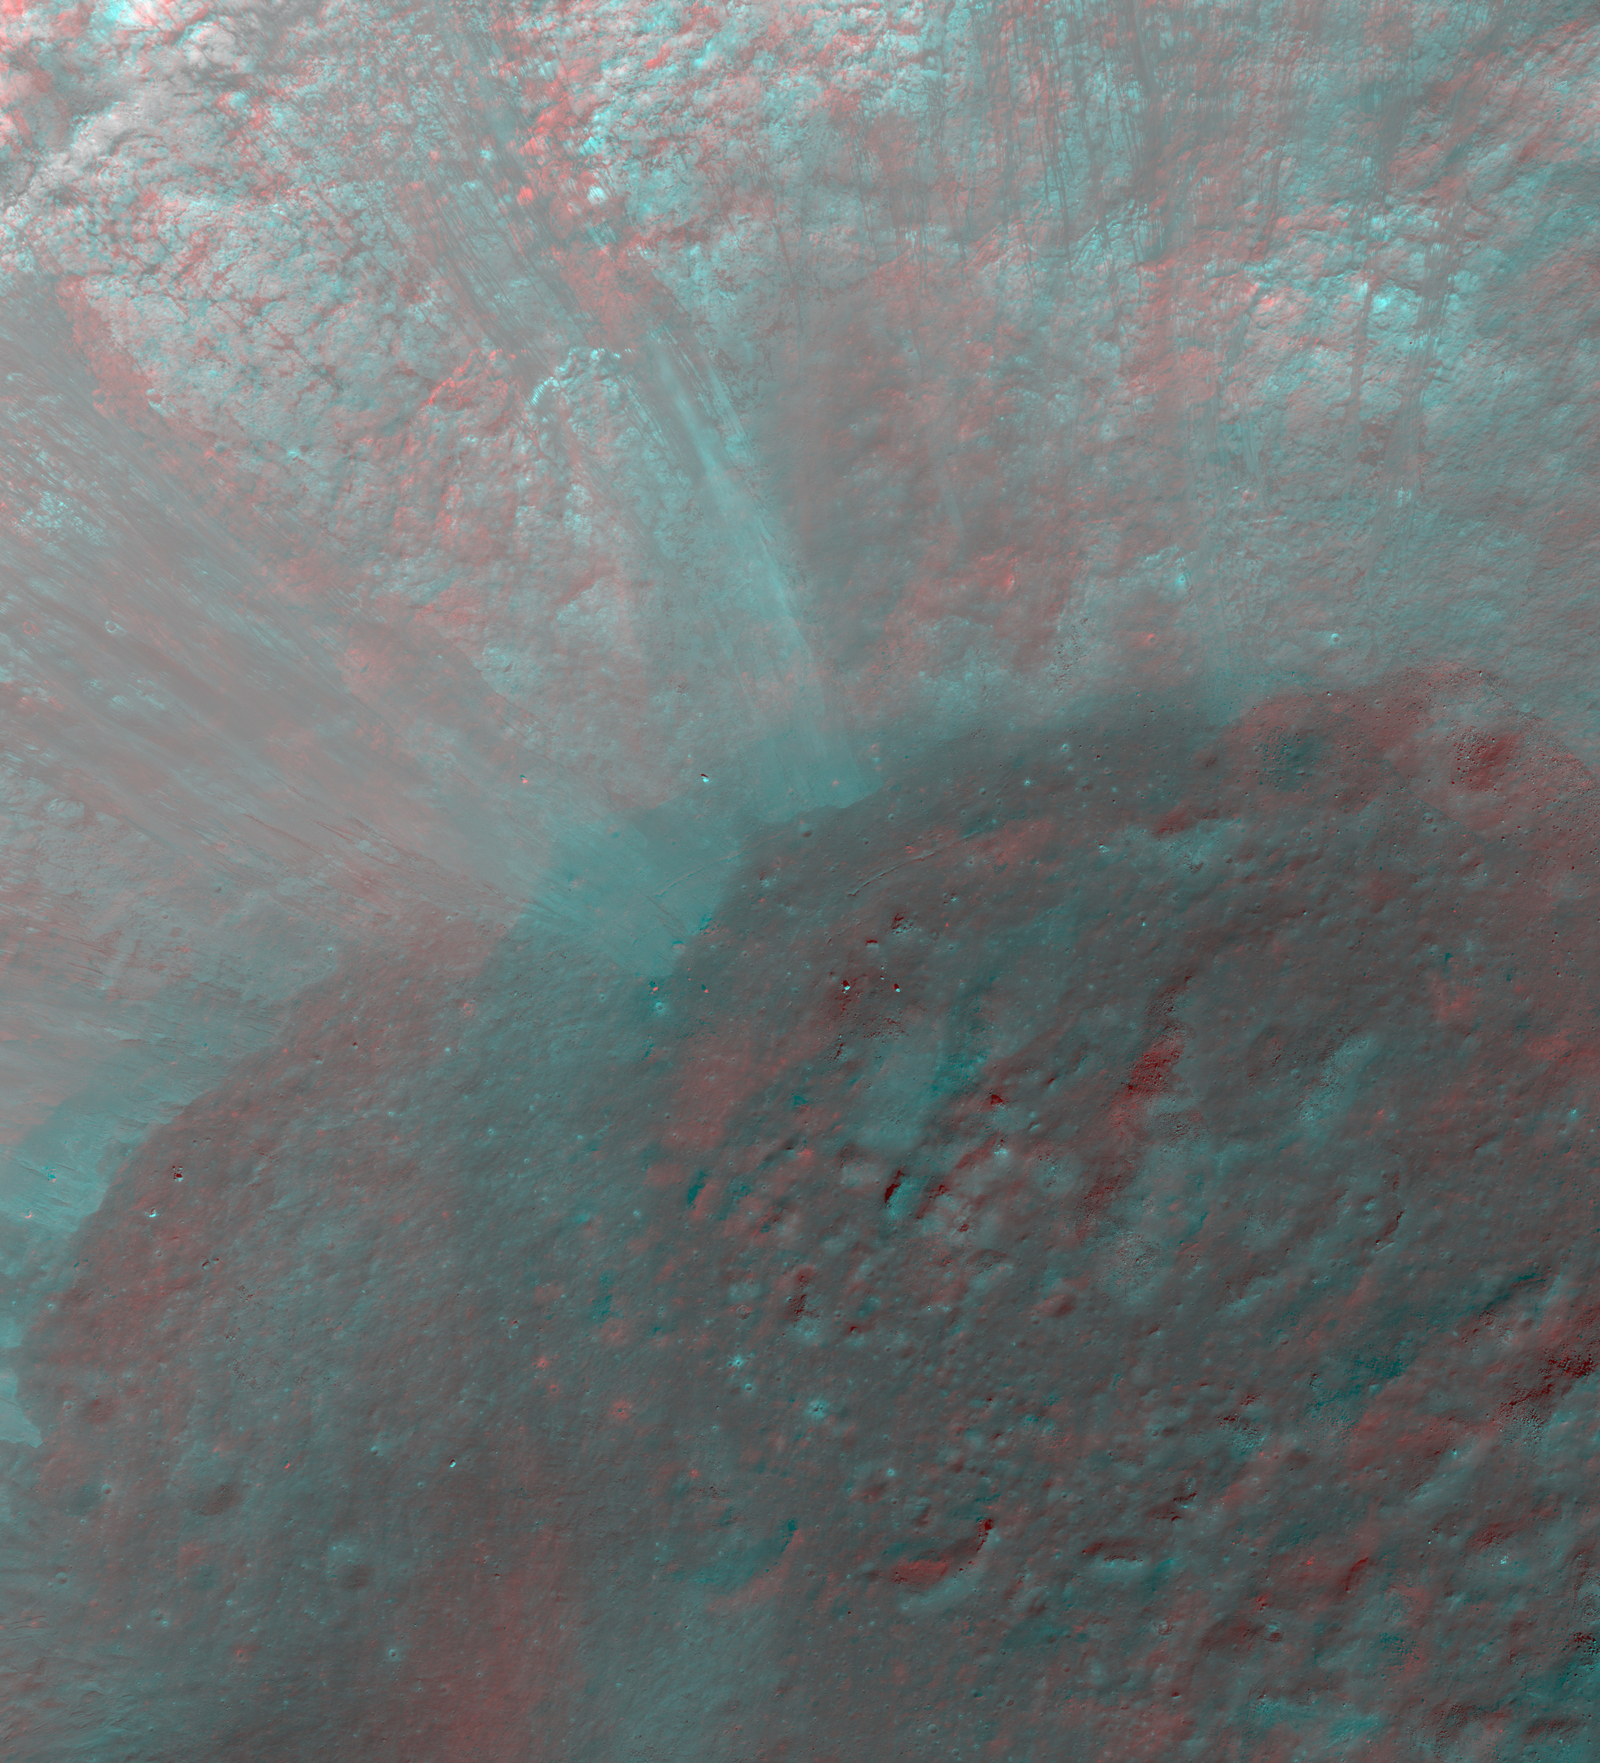 Moon in 3D: Janssen K Crater